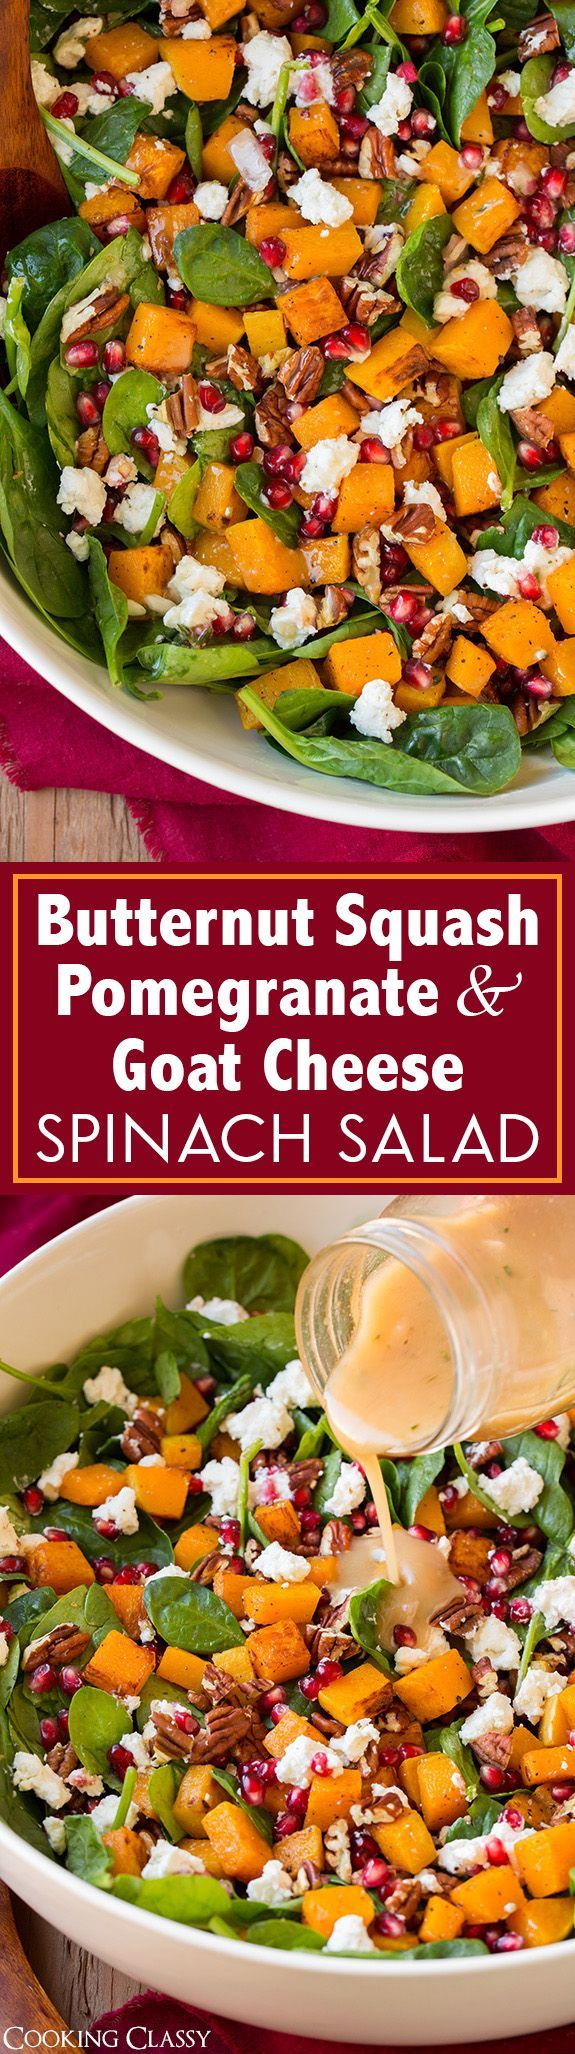 Butternut Squash, Pomegranate and Goat Cheese Spinach Salad with Red Wine Vinaigrette - definitely one of my FAVORITE fall/winter salads!! The flavors are blend perfectly.: